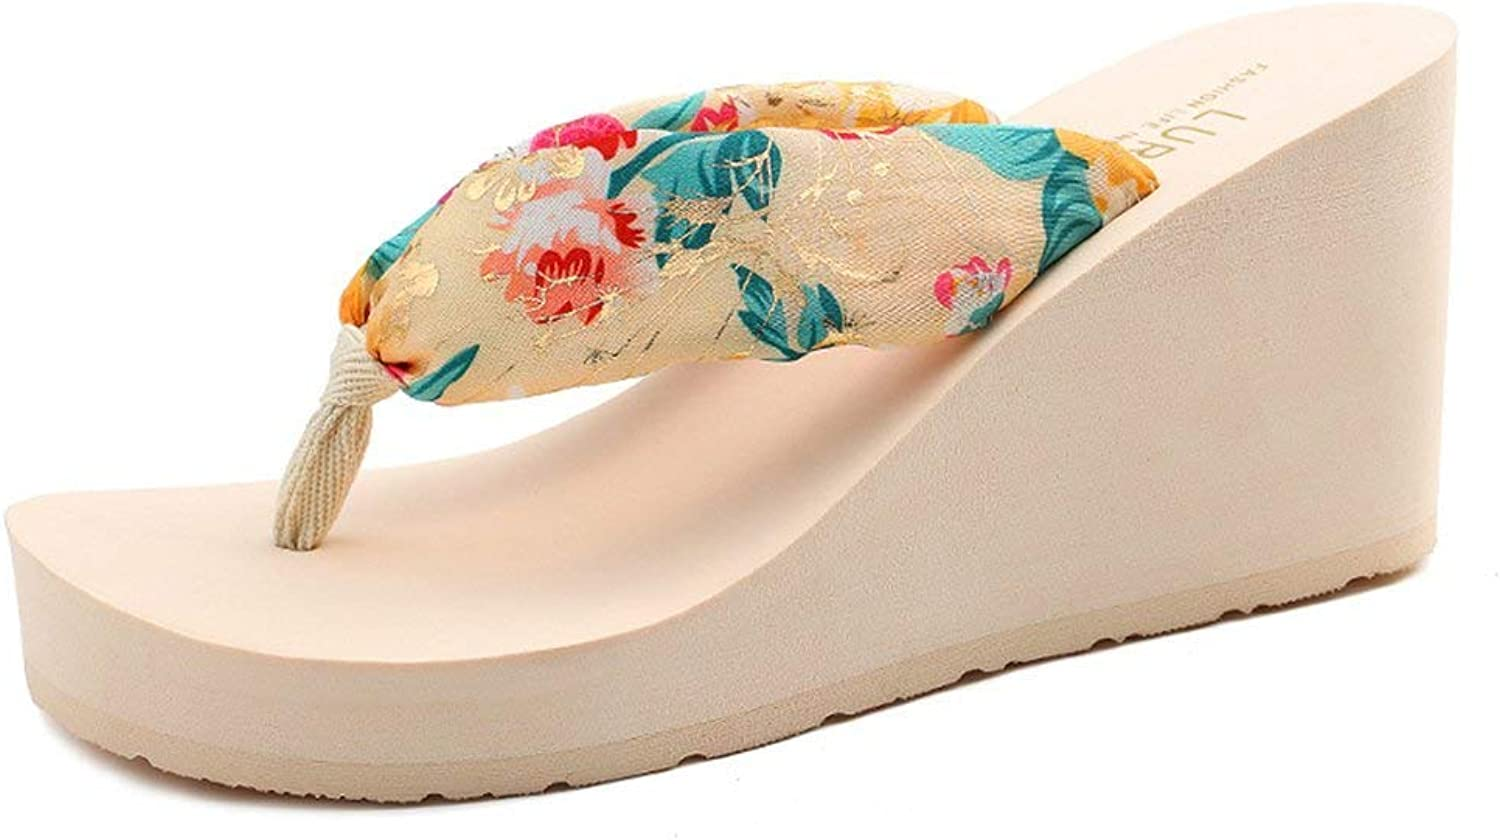 Wallhewb Women's Bohemian Floral Wedge Thong Sandals Platform Beach Flip Flops Vacation Slope Heel Rubber Sole Printing Beach shoes Breathable Upper Match Dresses Beige 5 M US Flip Flops